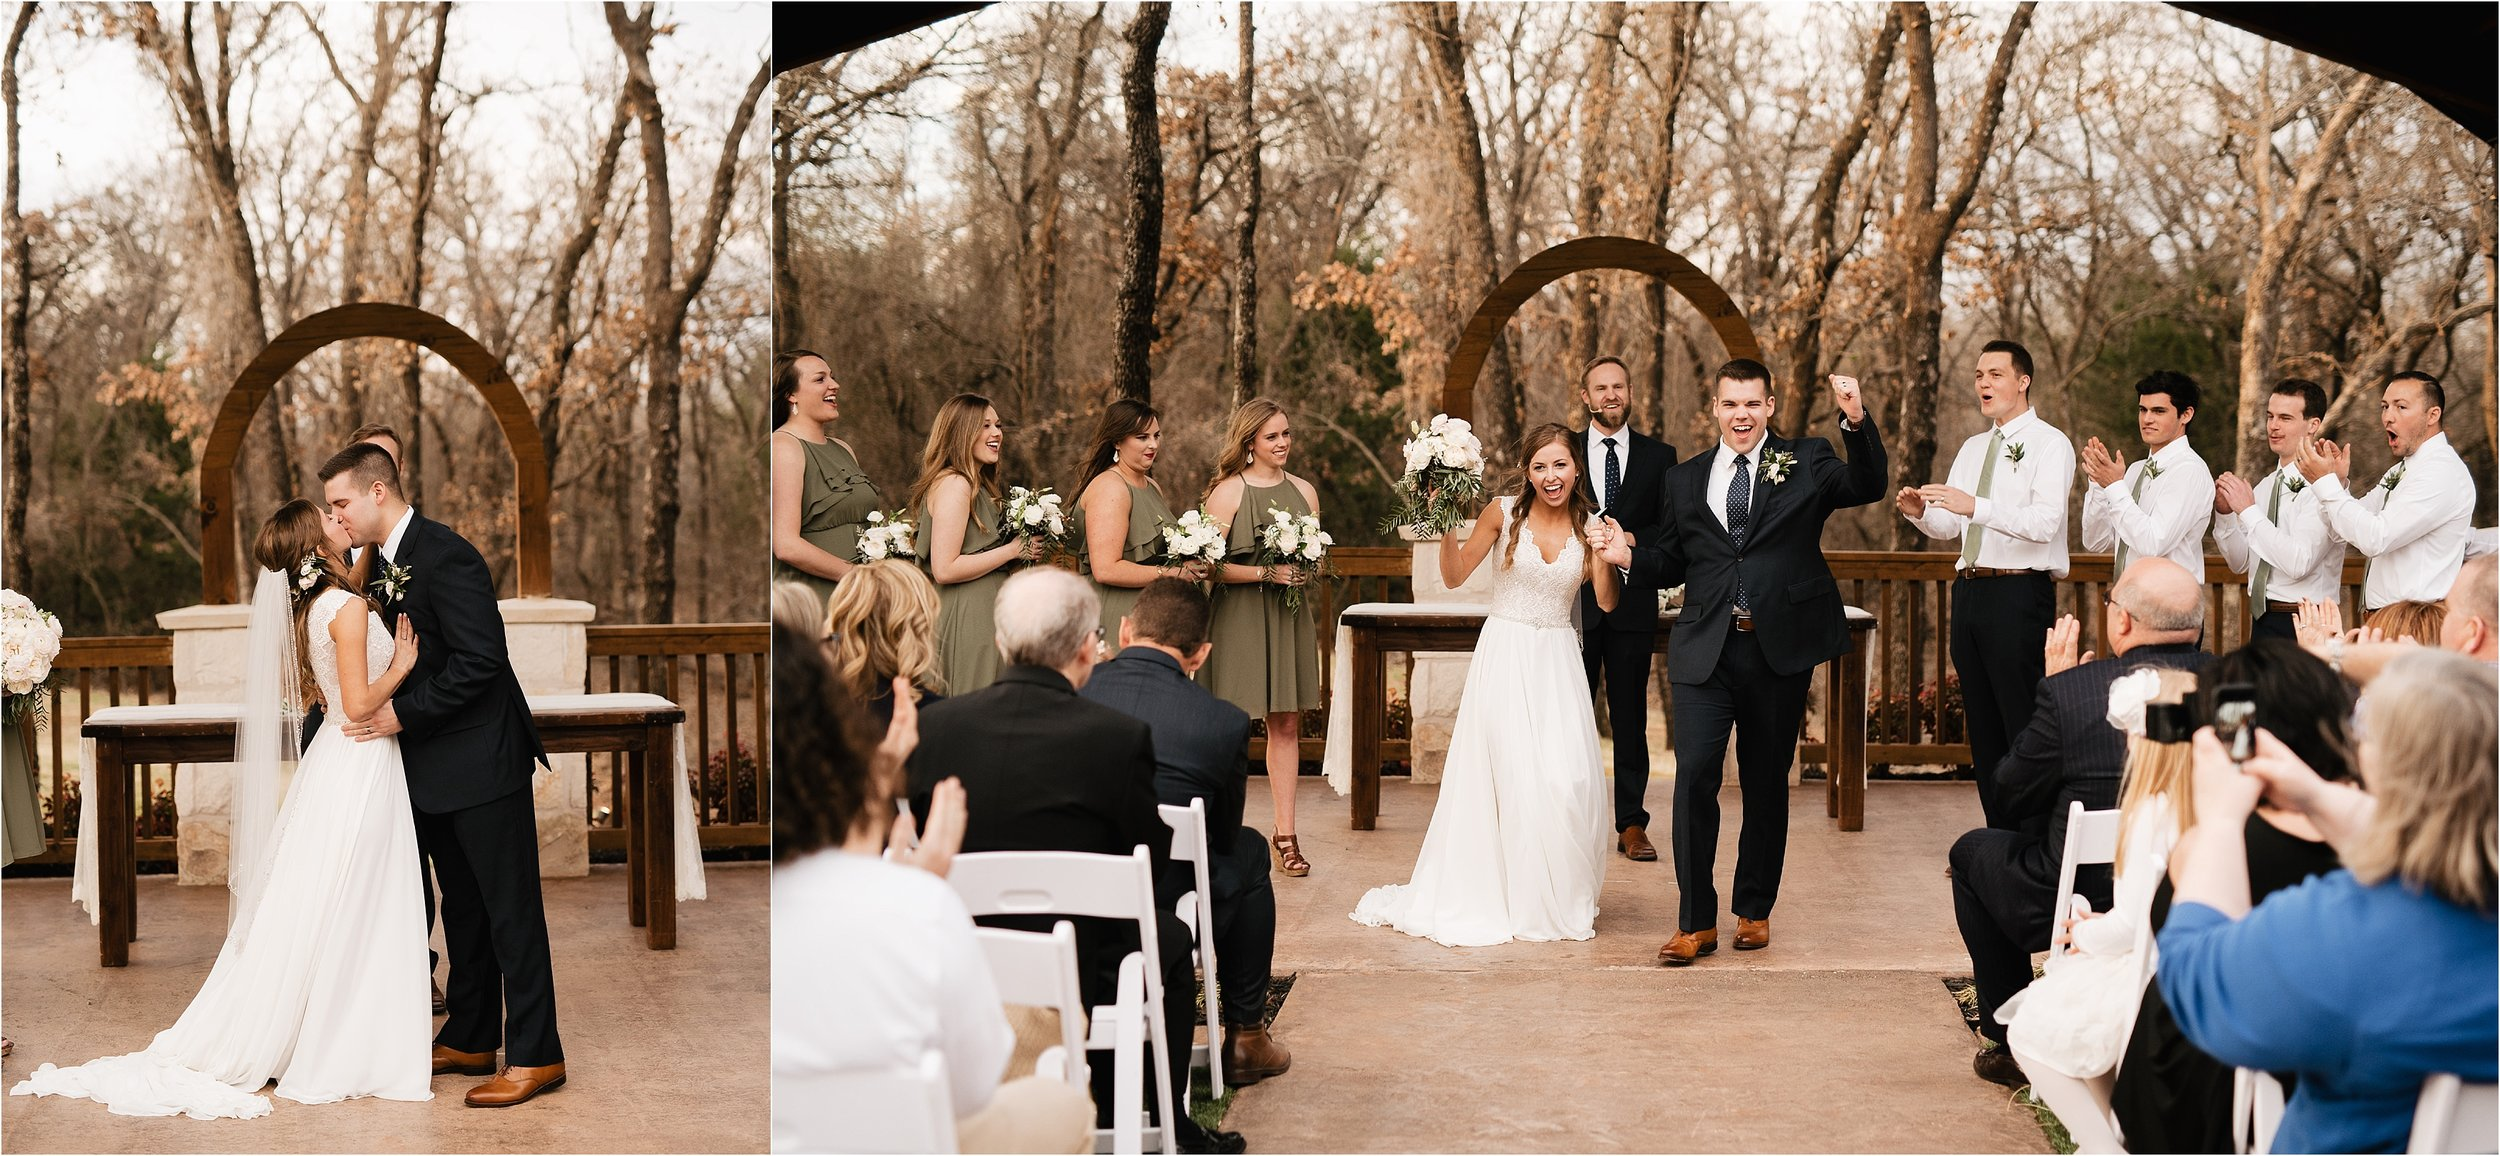 the springs norman oklahoma city wedding photographer outdoor ceremony reception wedding venue overcast family friends vows kiss the bride